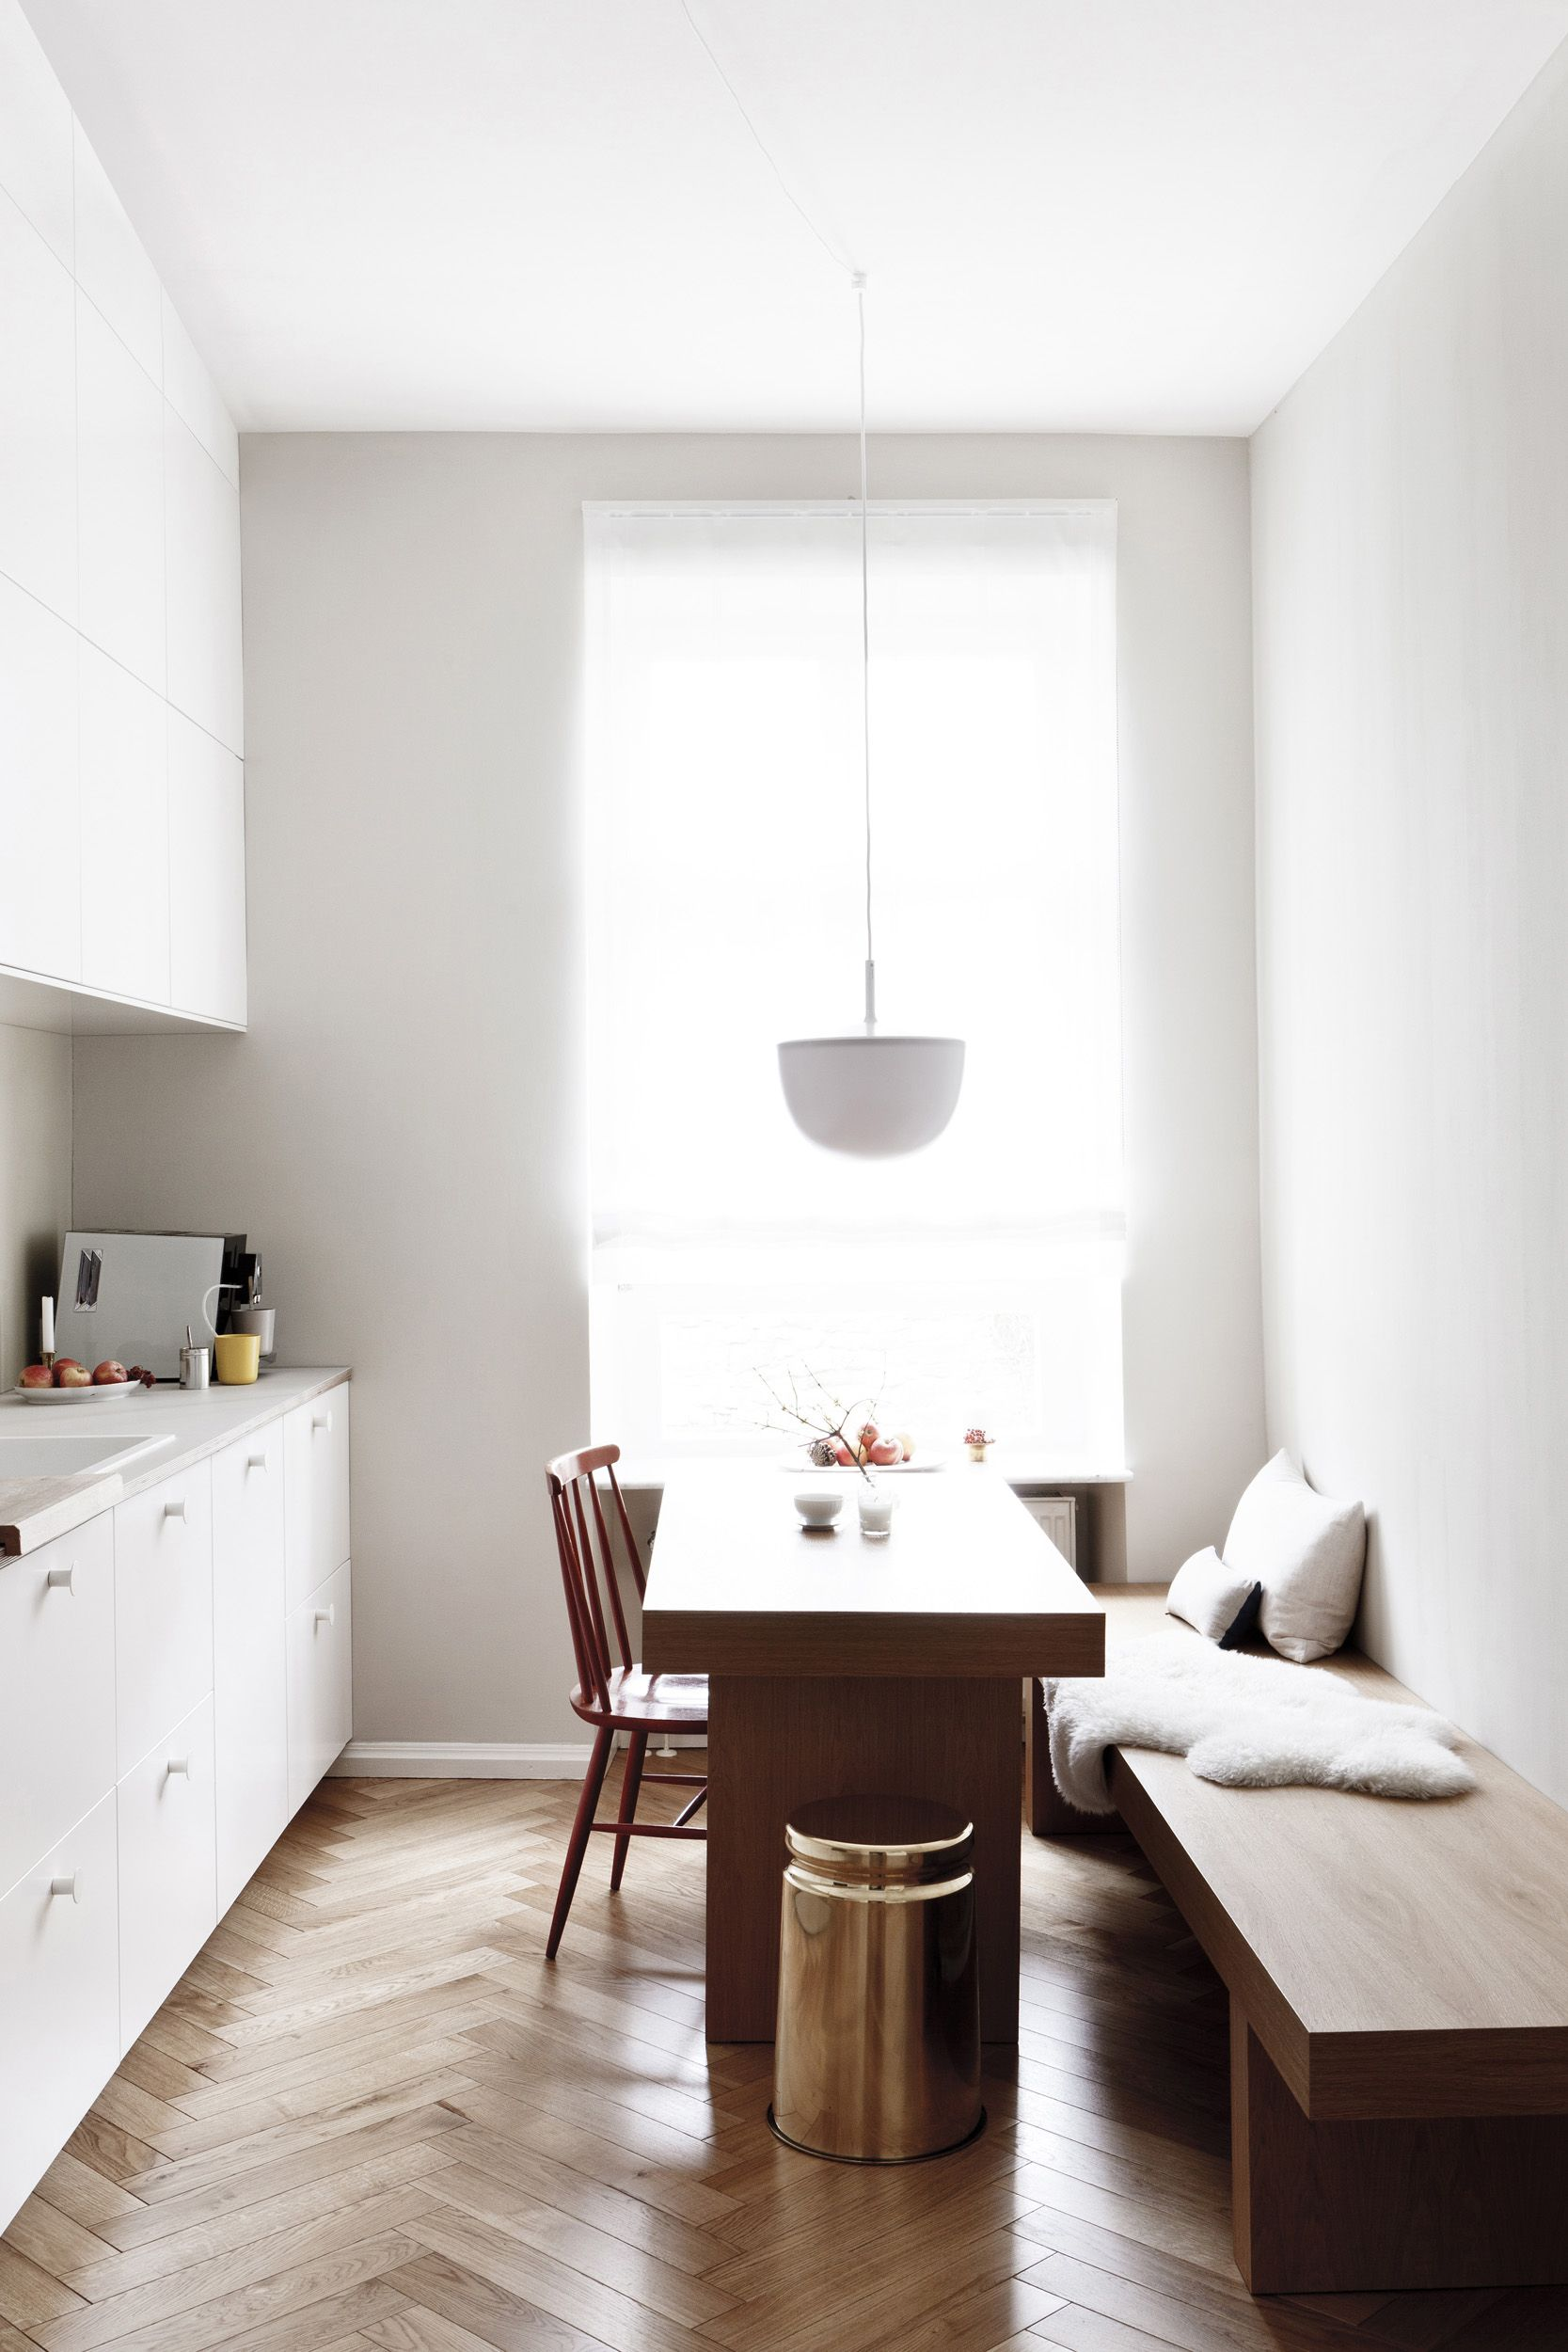 Elegant Minimalist Apartment Decor U2013 Modern U0026 Luxury Ideas   Customized Ikea  Kitchen In A Luxe Minimalist Apartment Remodel By Studio Oink In Mainz, ...